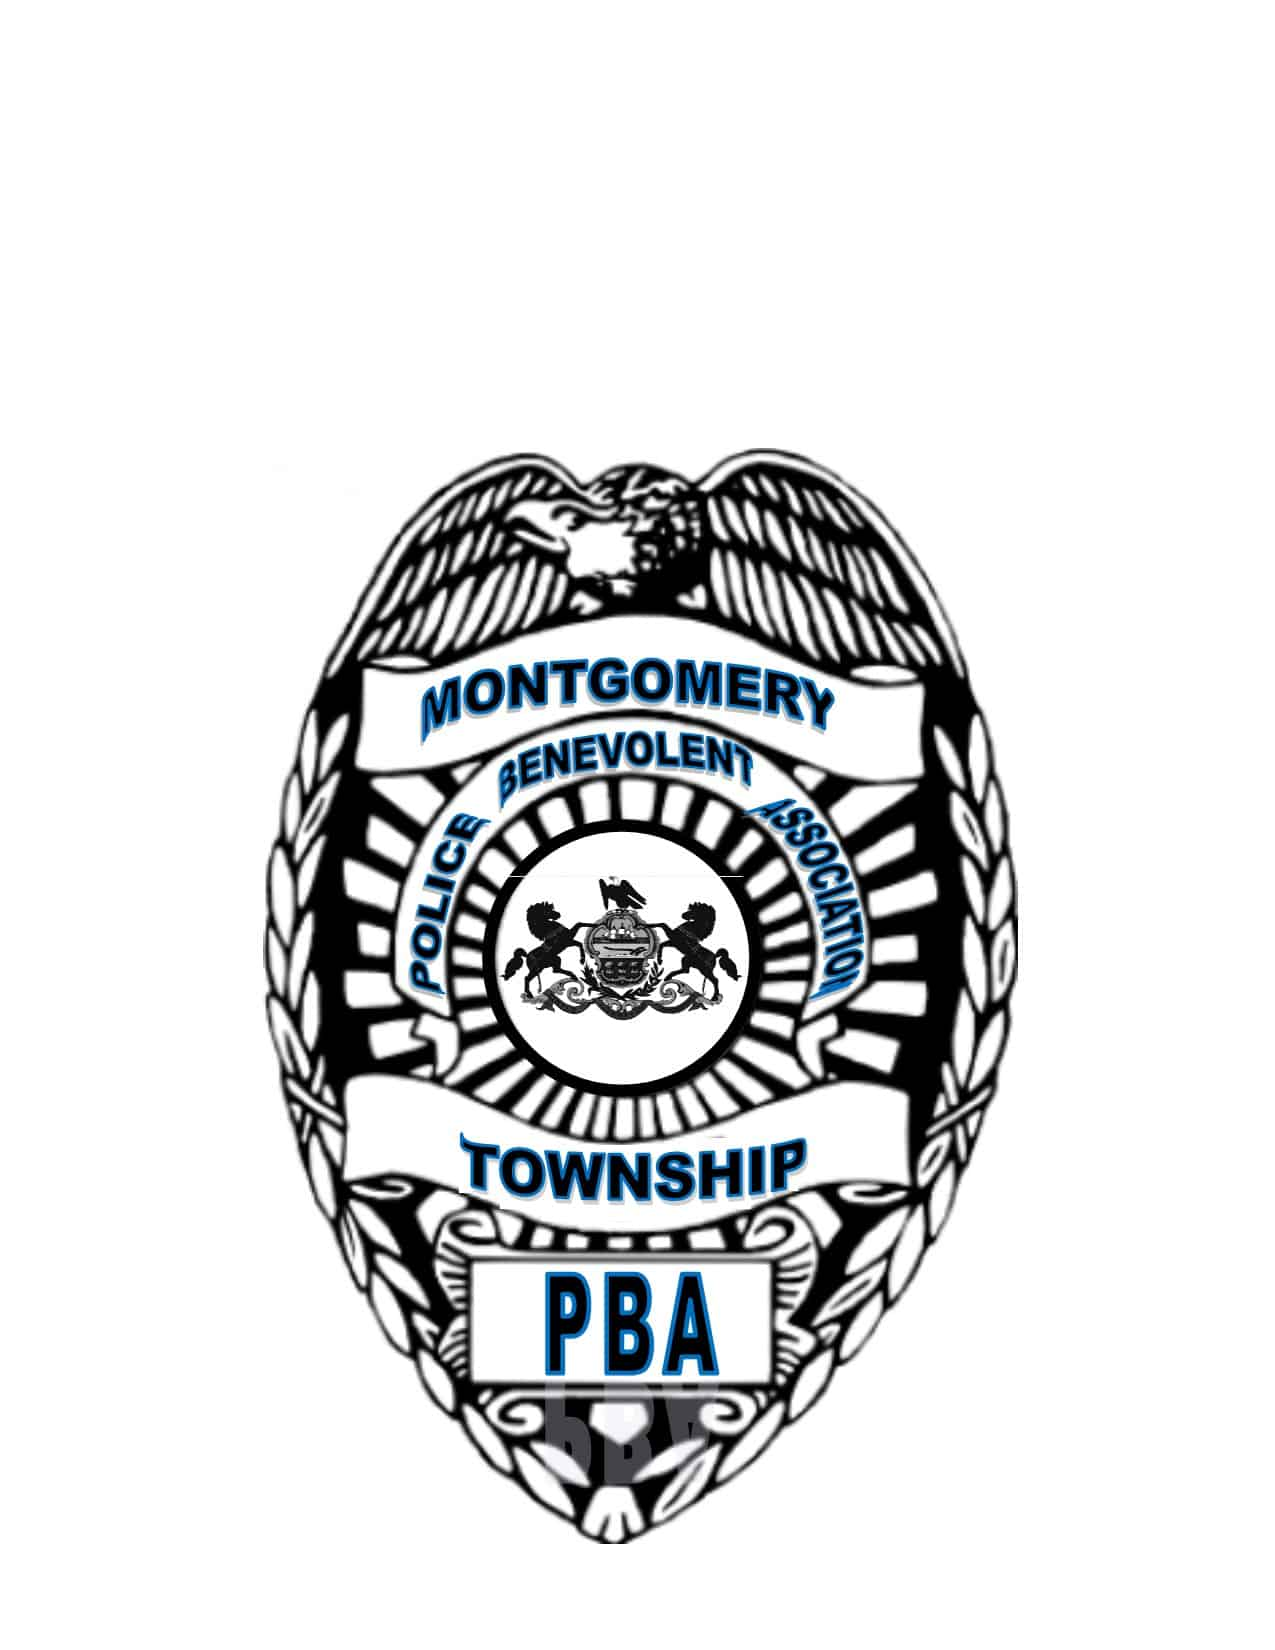 Mongomery Township Policy Benevolent Association logo